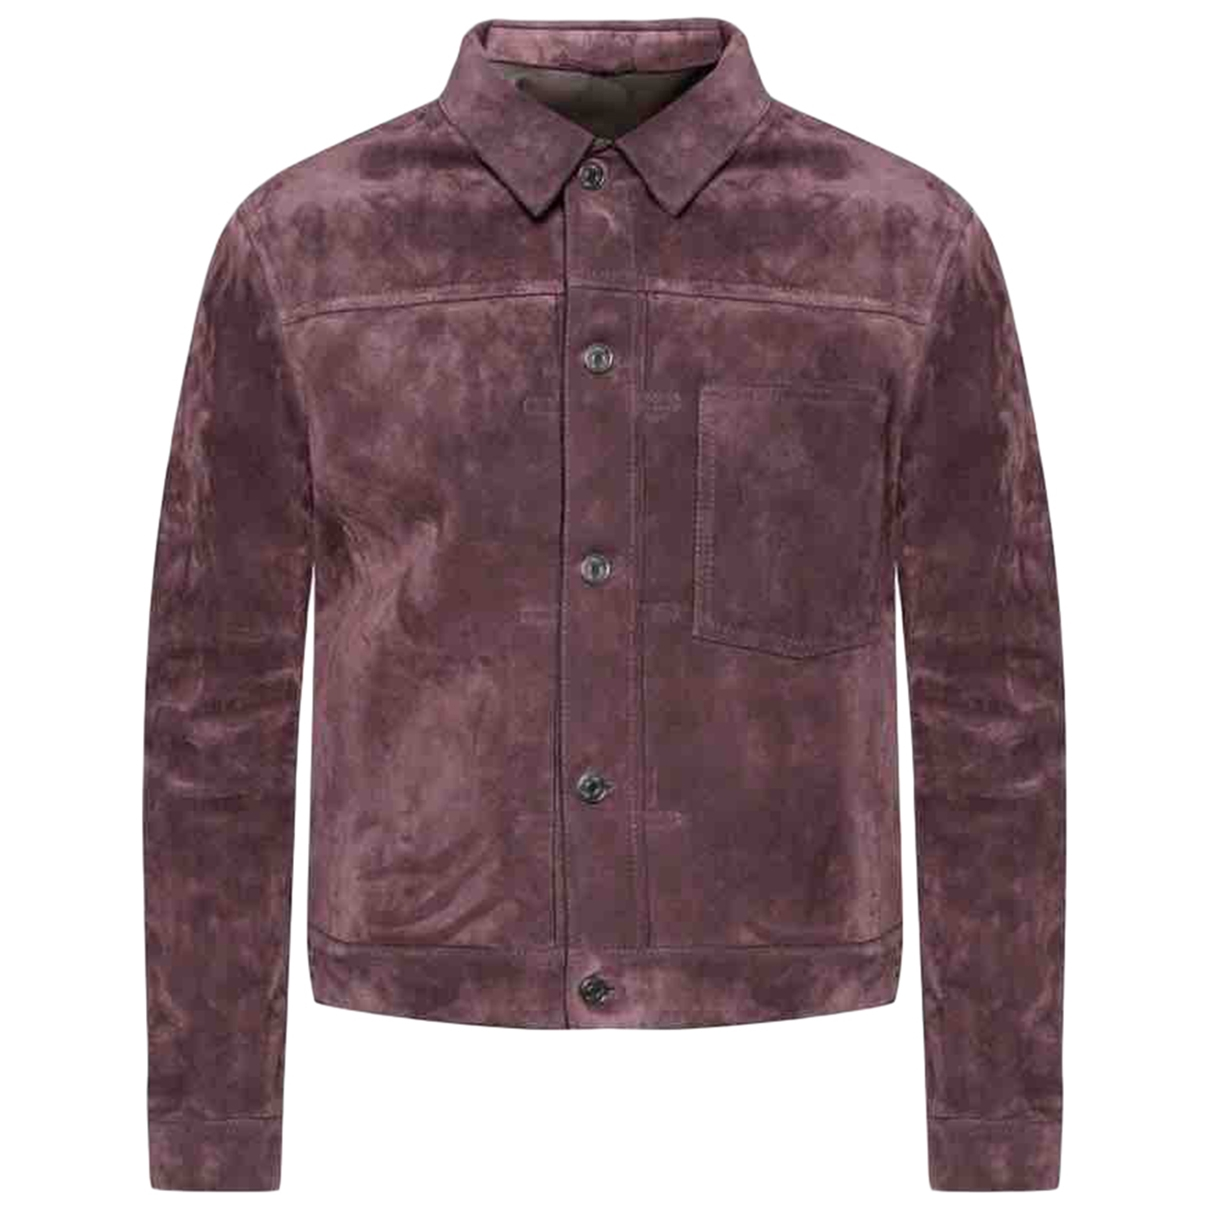 Berluti \N Jacke in  Bordeauxrot Veloursleder